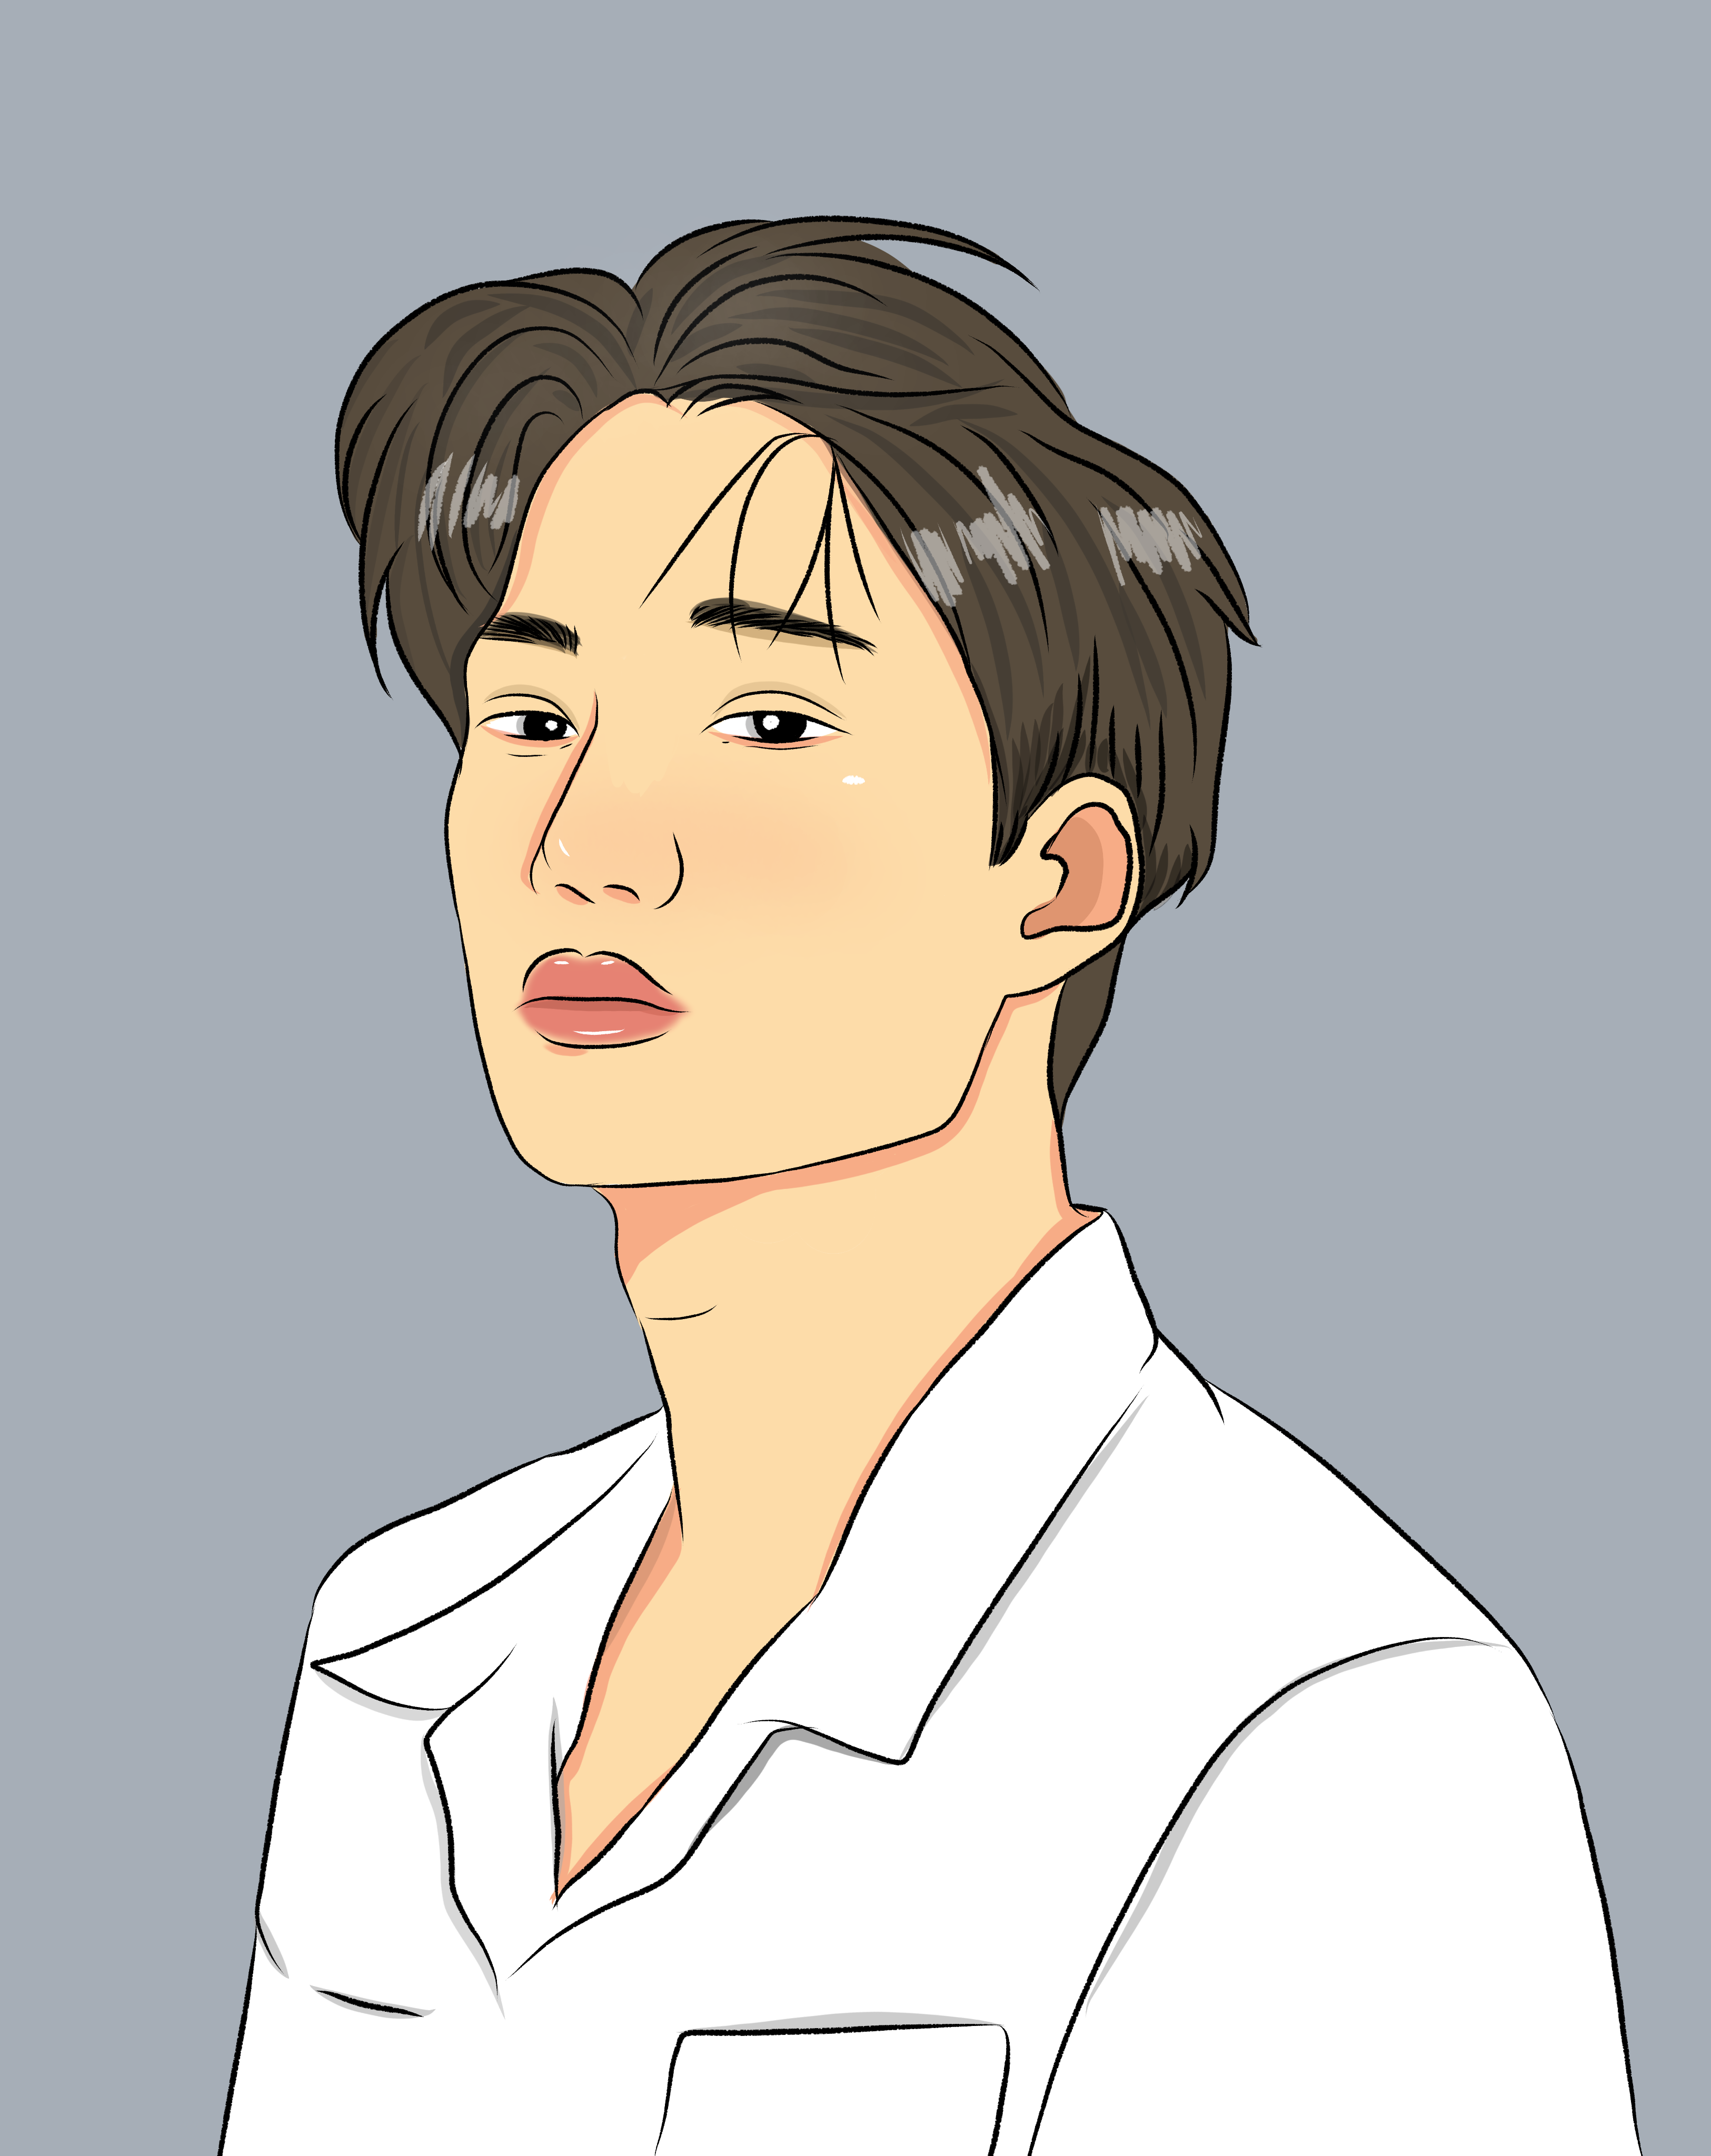 Simple caricature anime drawing cartoon for gift. I can design you some character too.